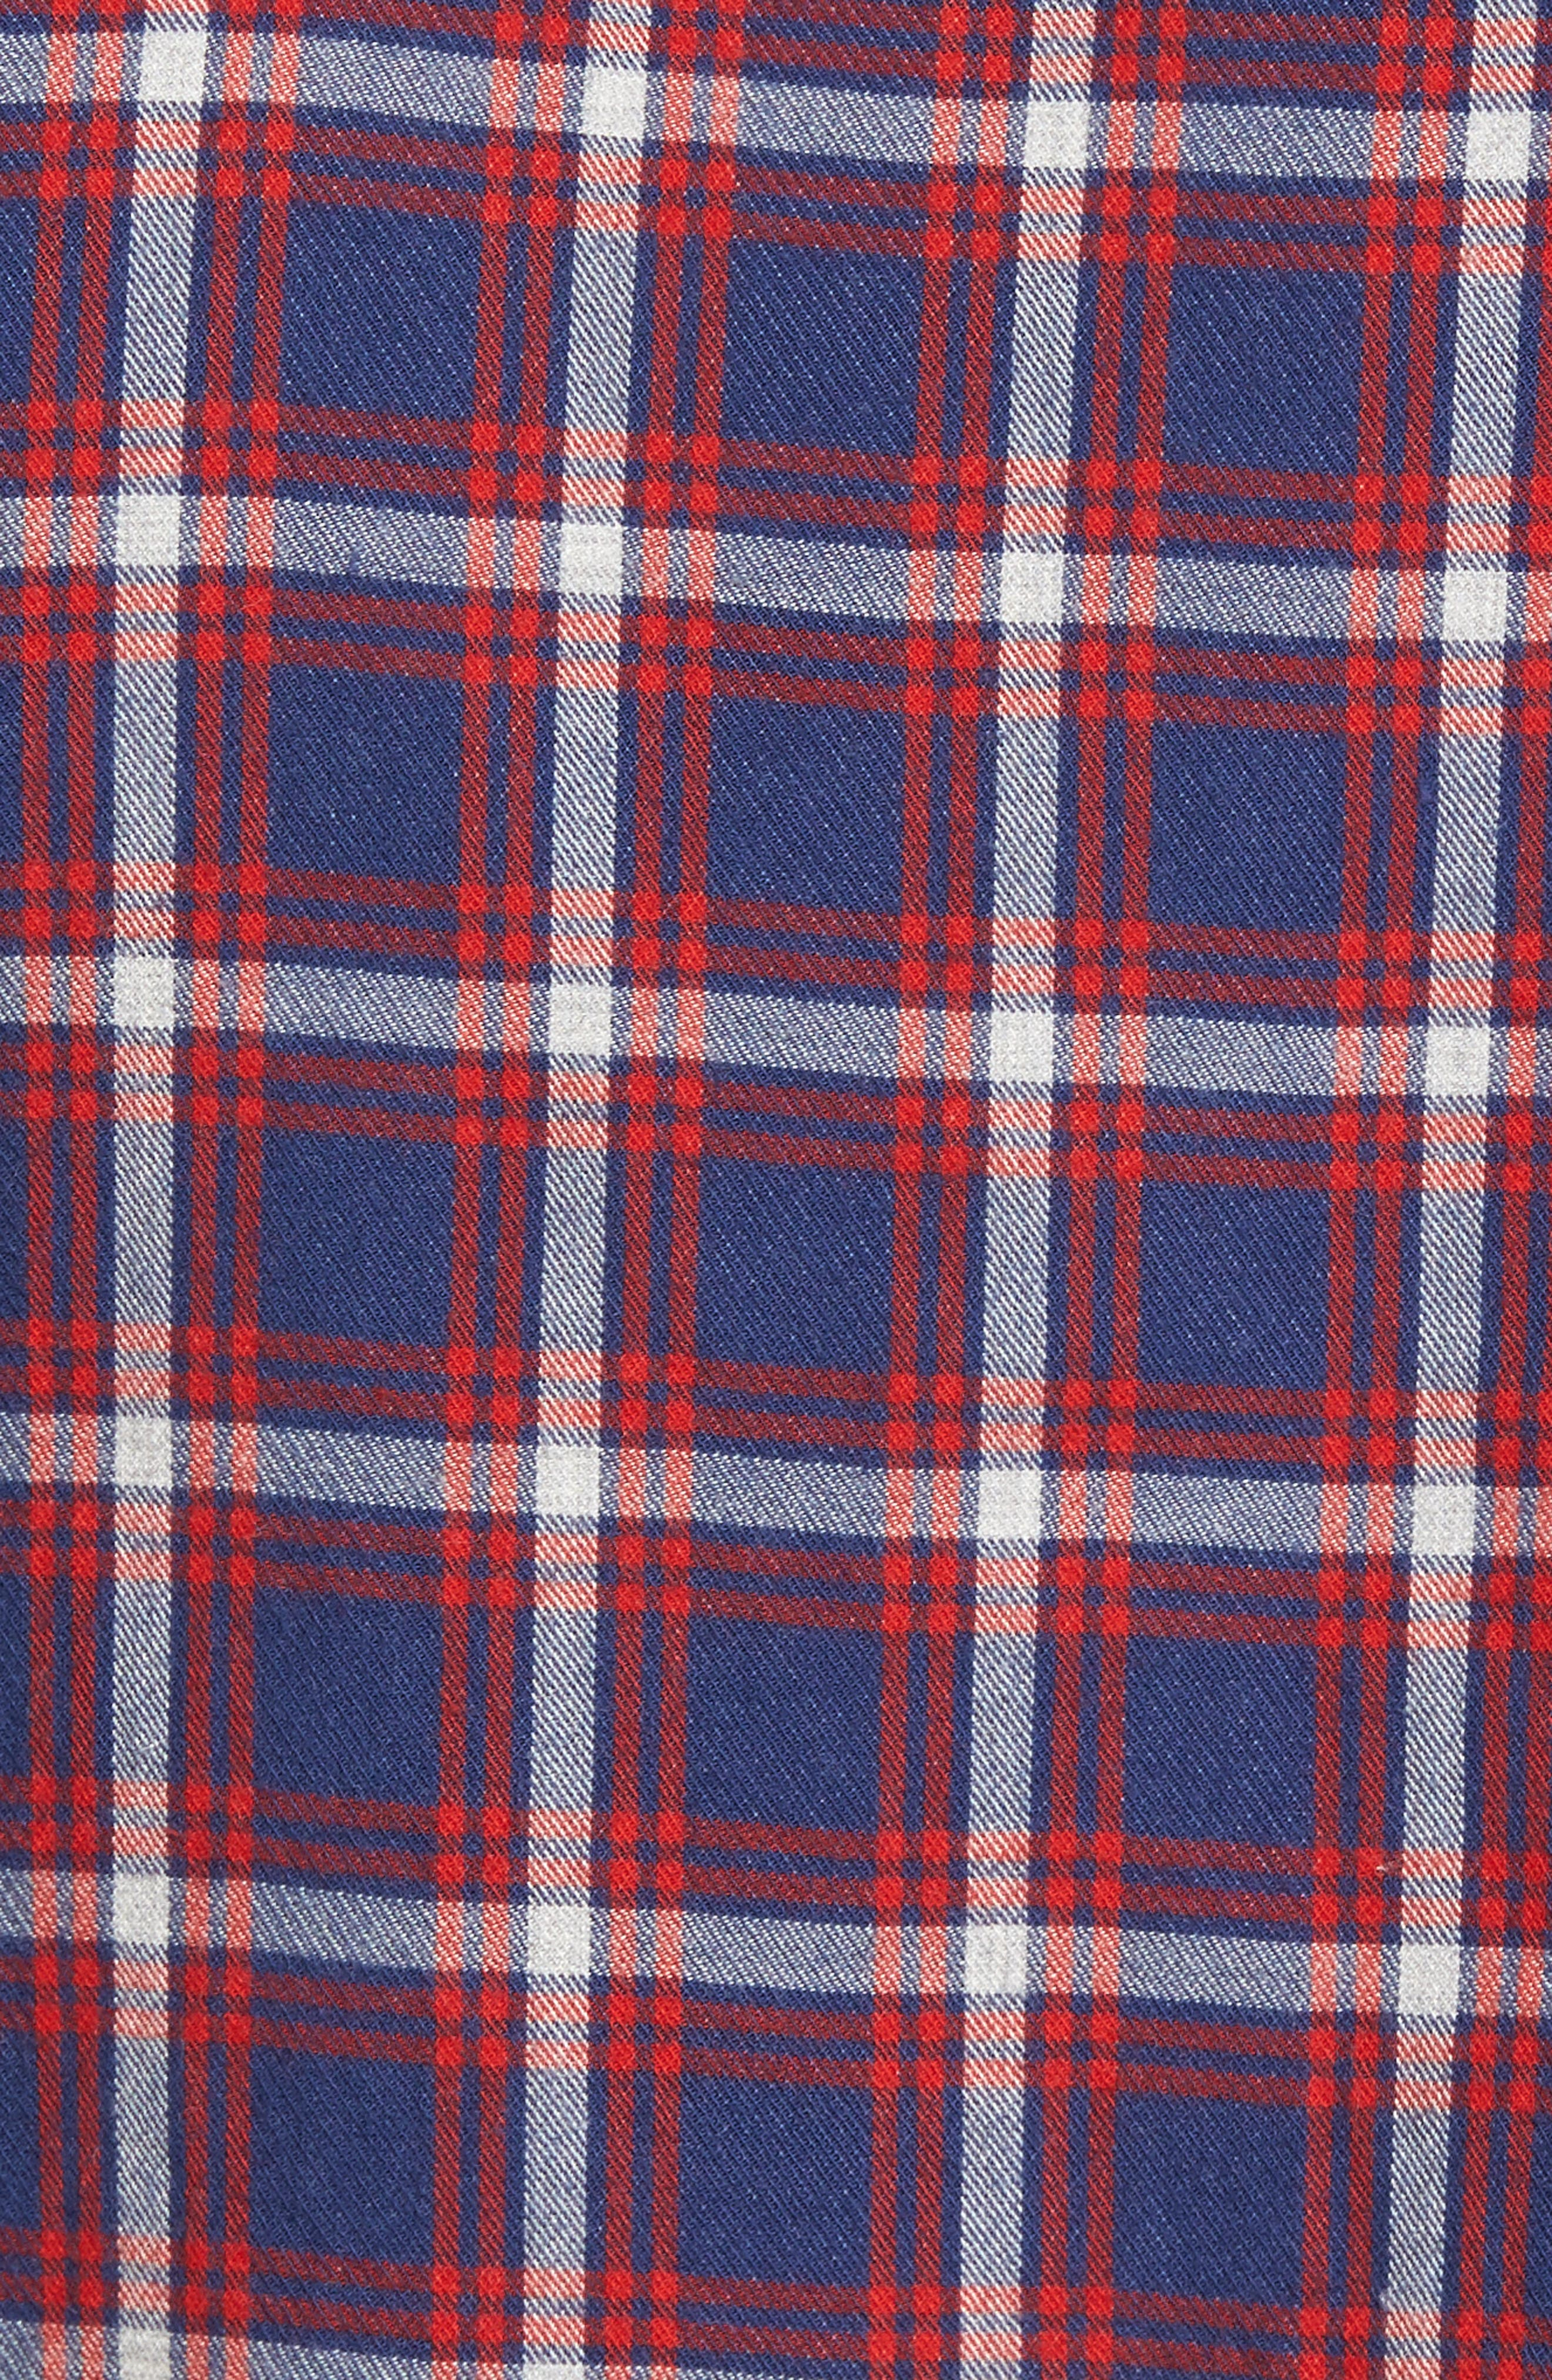 Trim Fit Duofold Check Sport Shirt,                             Alternate thumbnail 5, color,                             Navy Iris Red Plaid Duofold